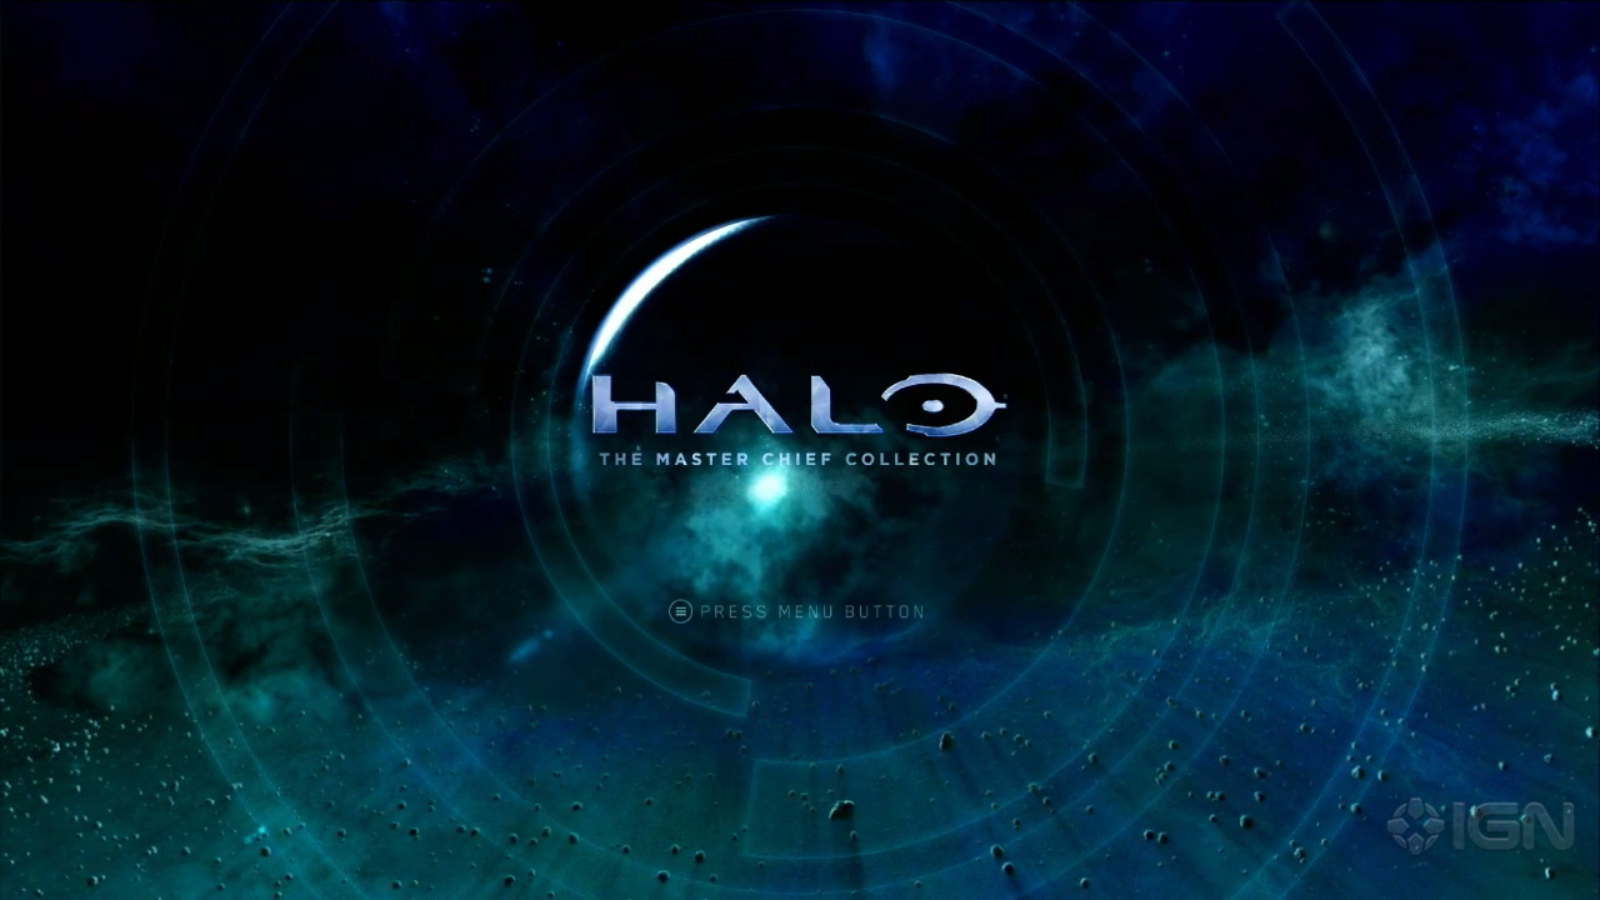 Halo – E3 2014, News & Speculation | haruspis